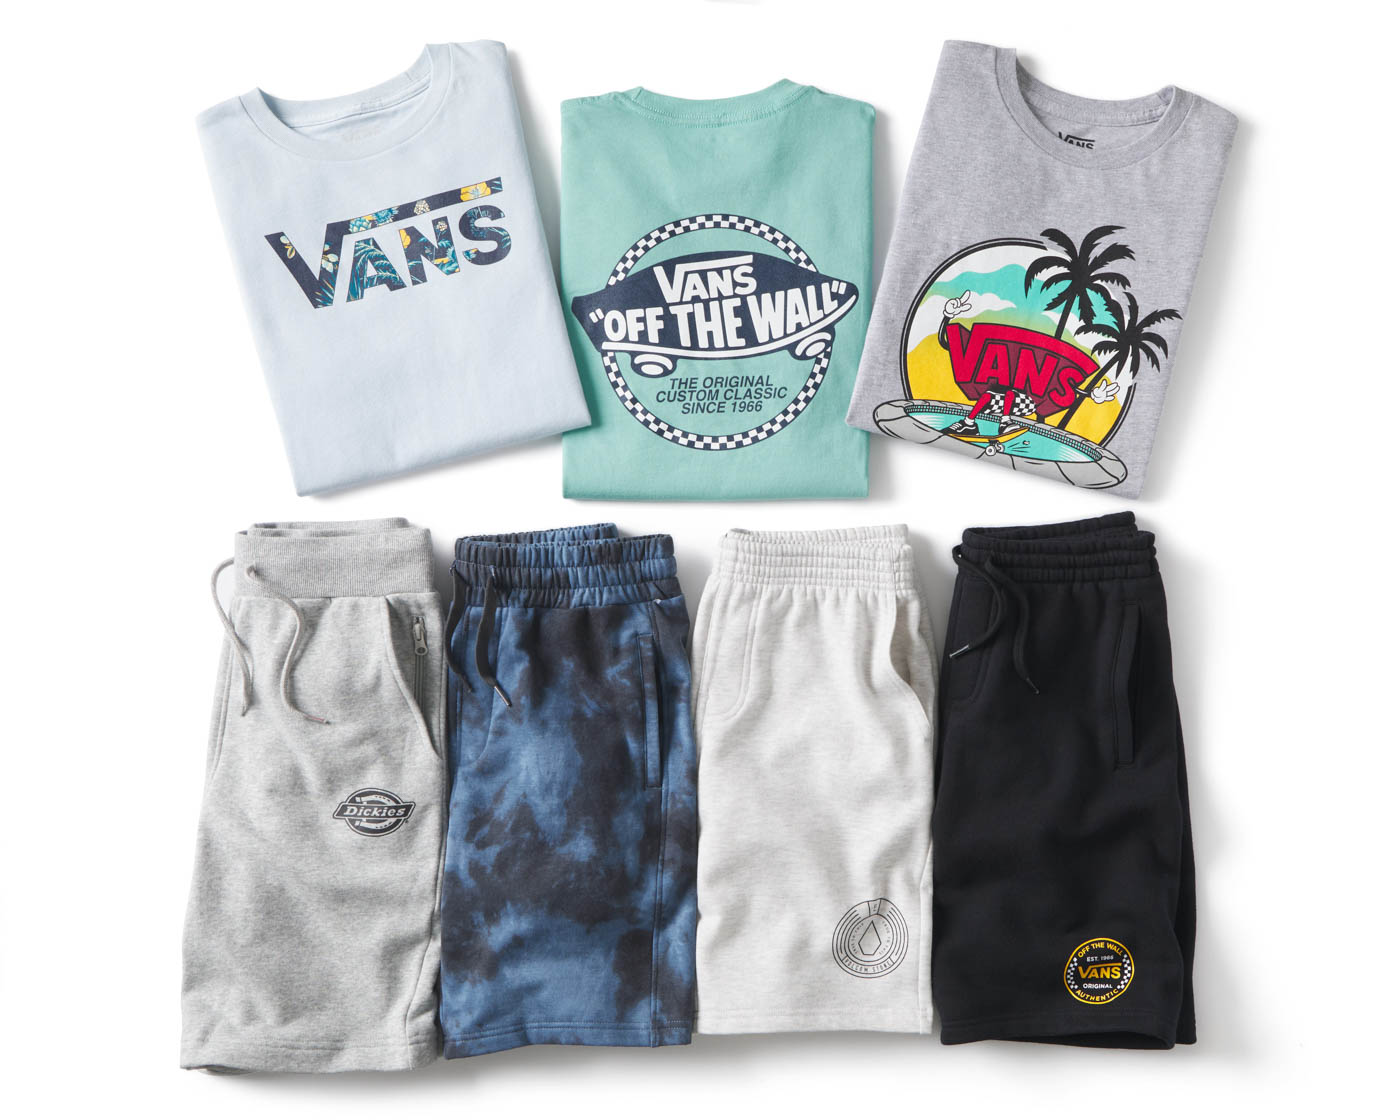 Tillys-editorial-apparel-clothing-shirt-shoes-damion-lloyd-commercial-photography-product-orange-county-los-angeles-vans-shorts